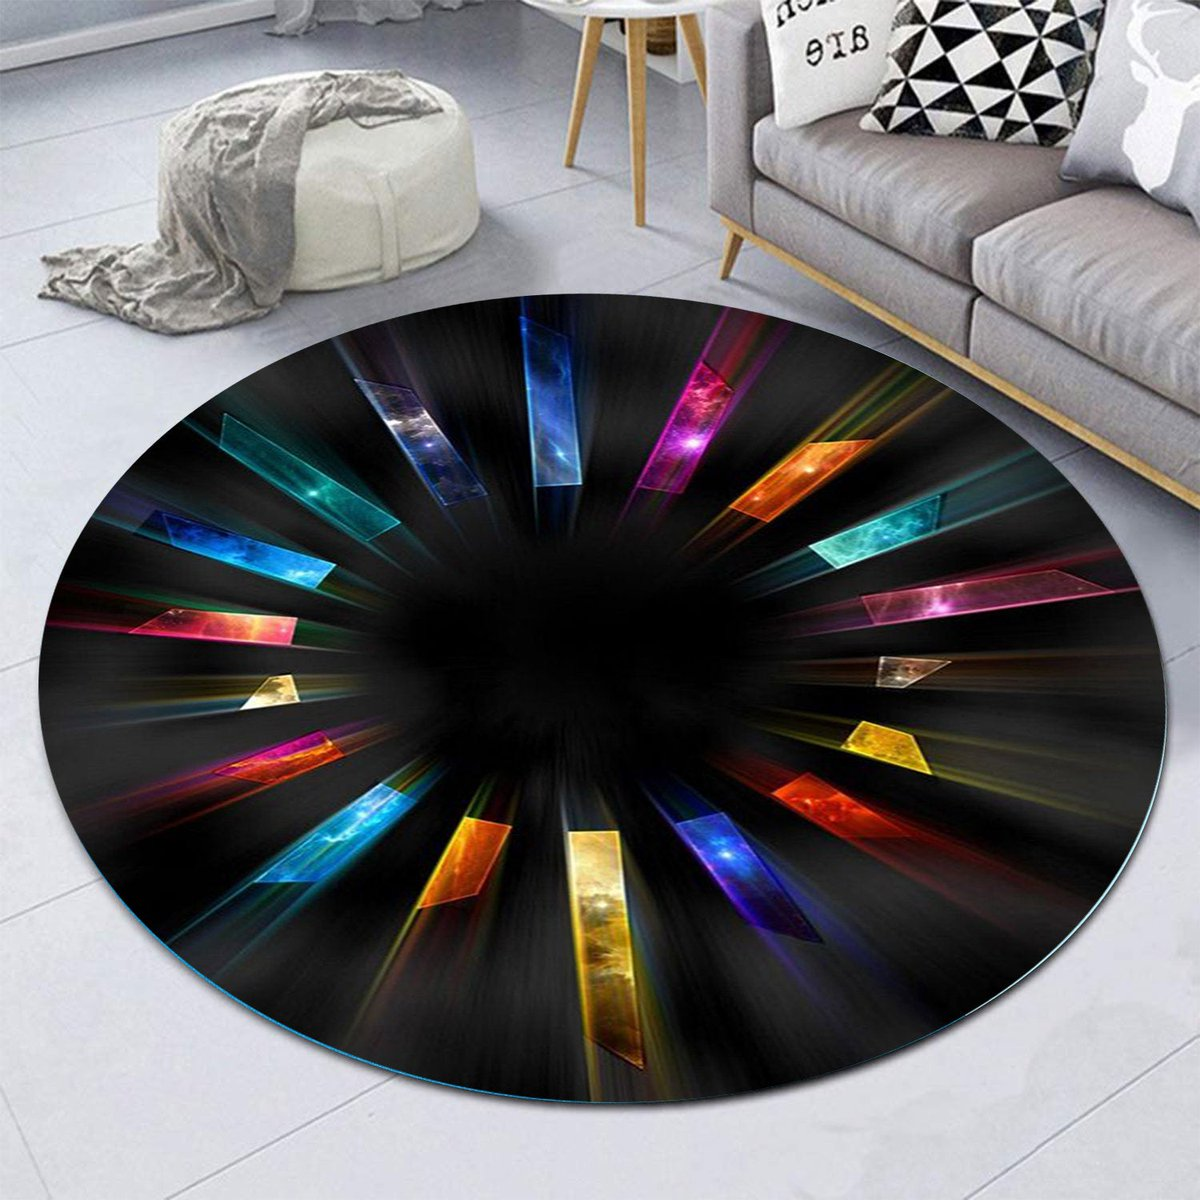 #round #mat #love #diamonds #yoga #newyork #fun #travel #family #engagementring #fitness #diamond #art #circle #food #nyc #friends #jewelry #design #new #fashion #life #hotyoga #ring #california #boston #vacation #proposal #grateful #usa